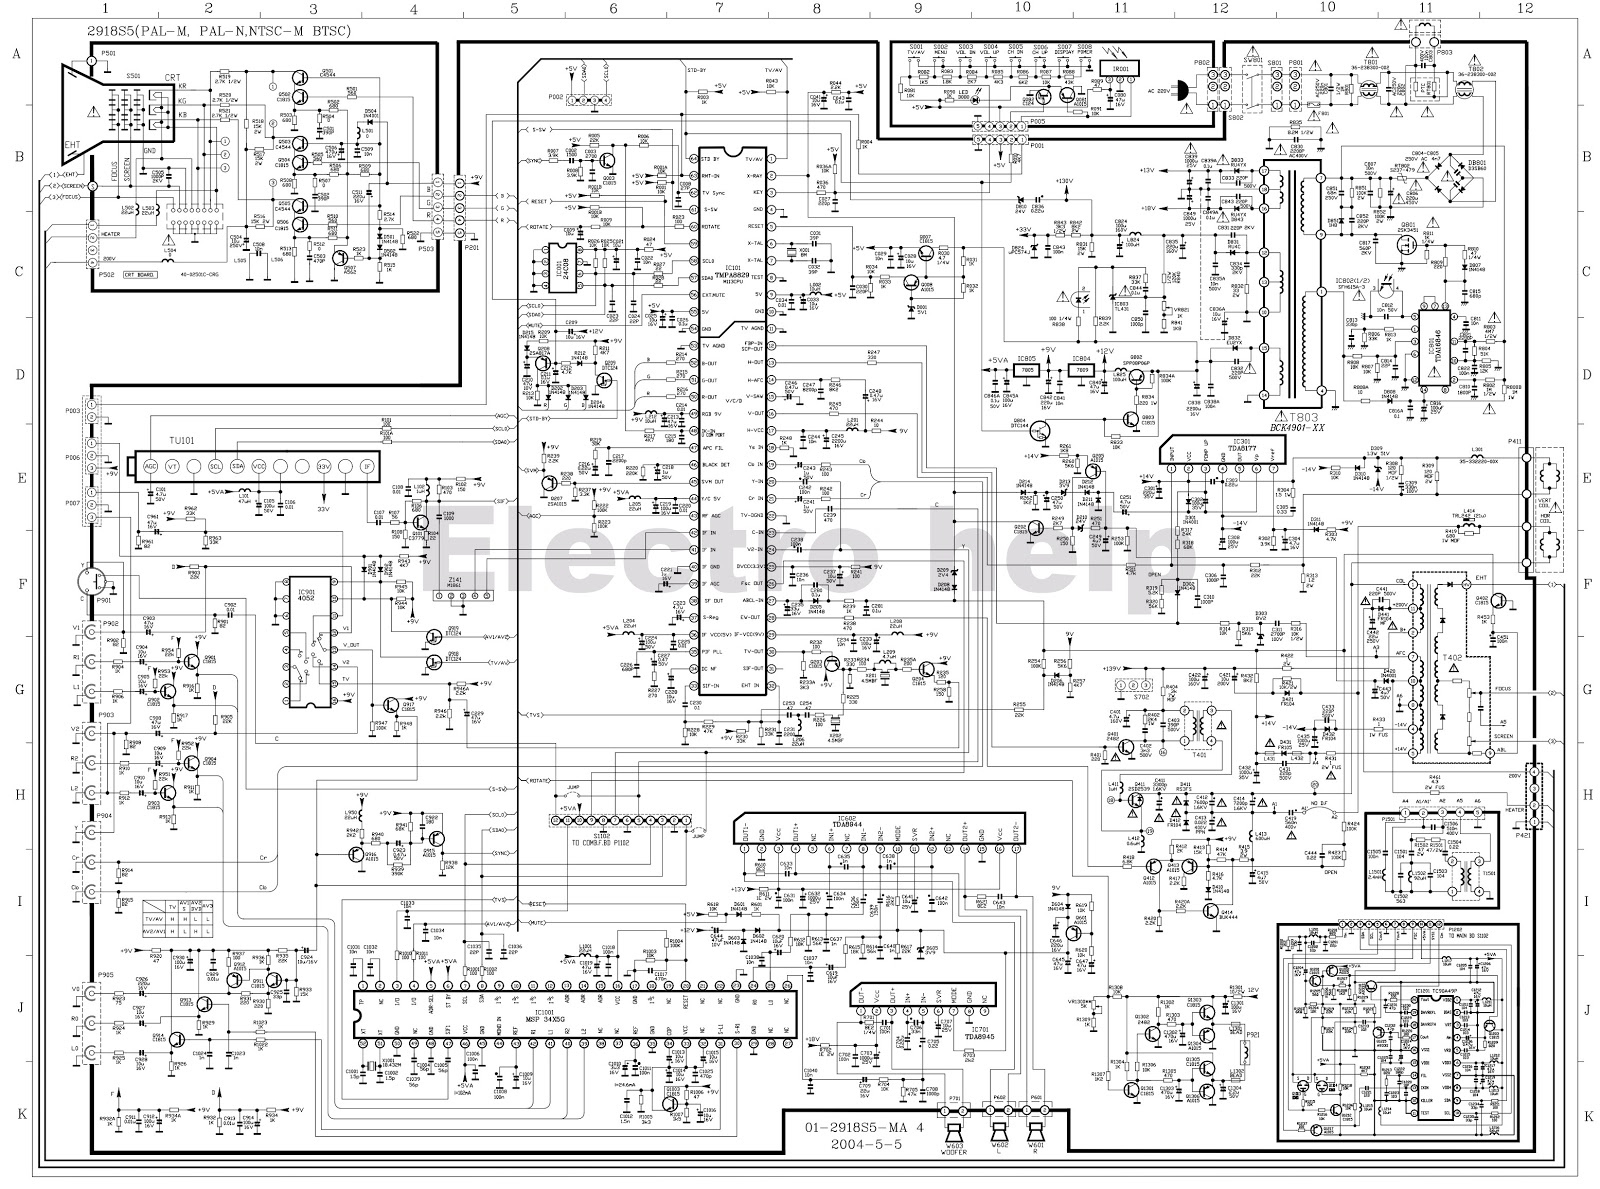 wiring diagram lg tv